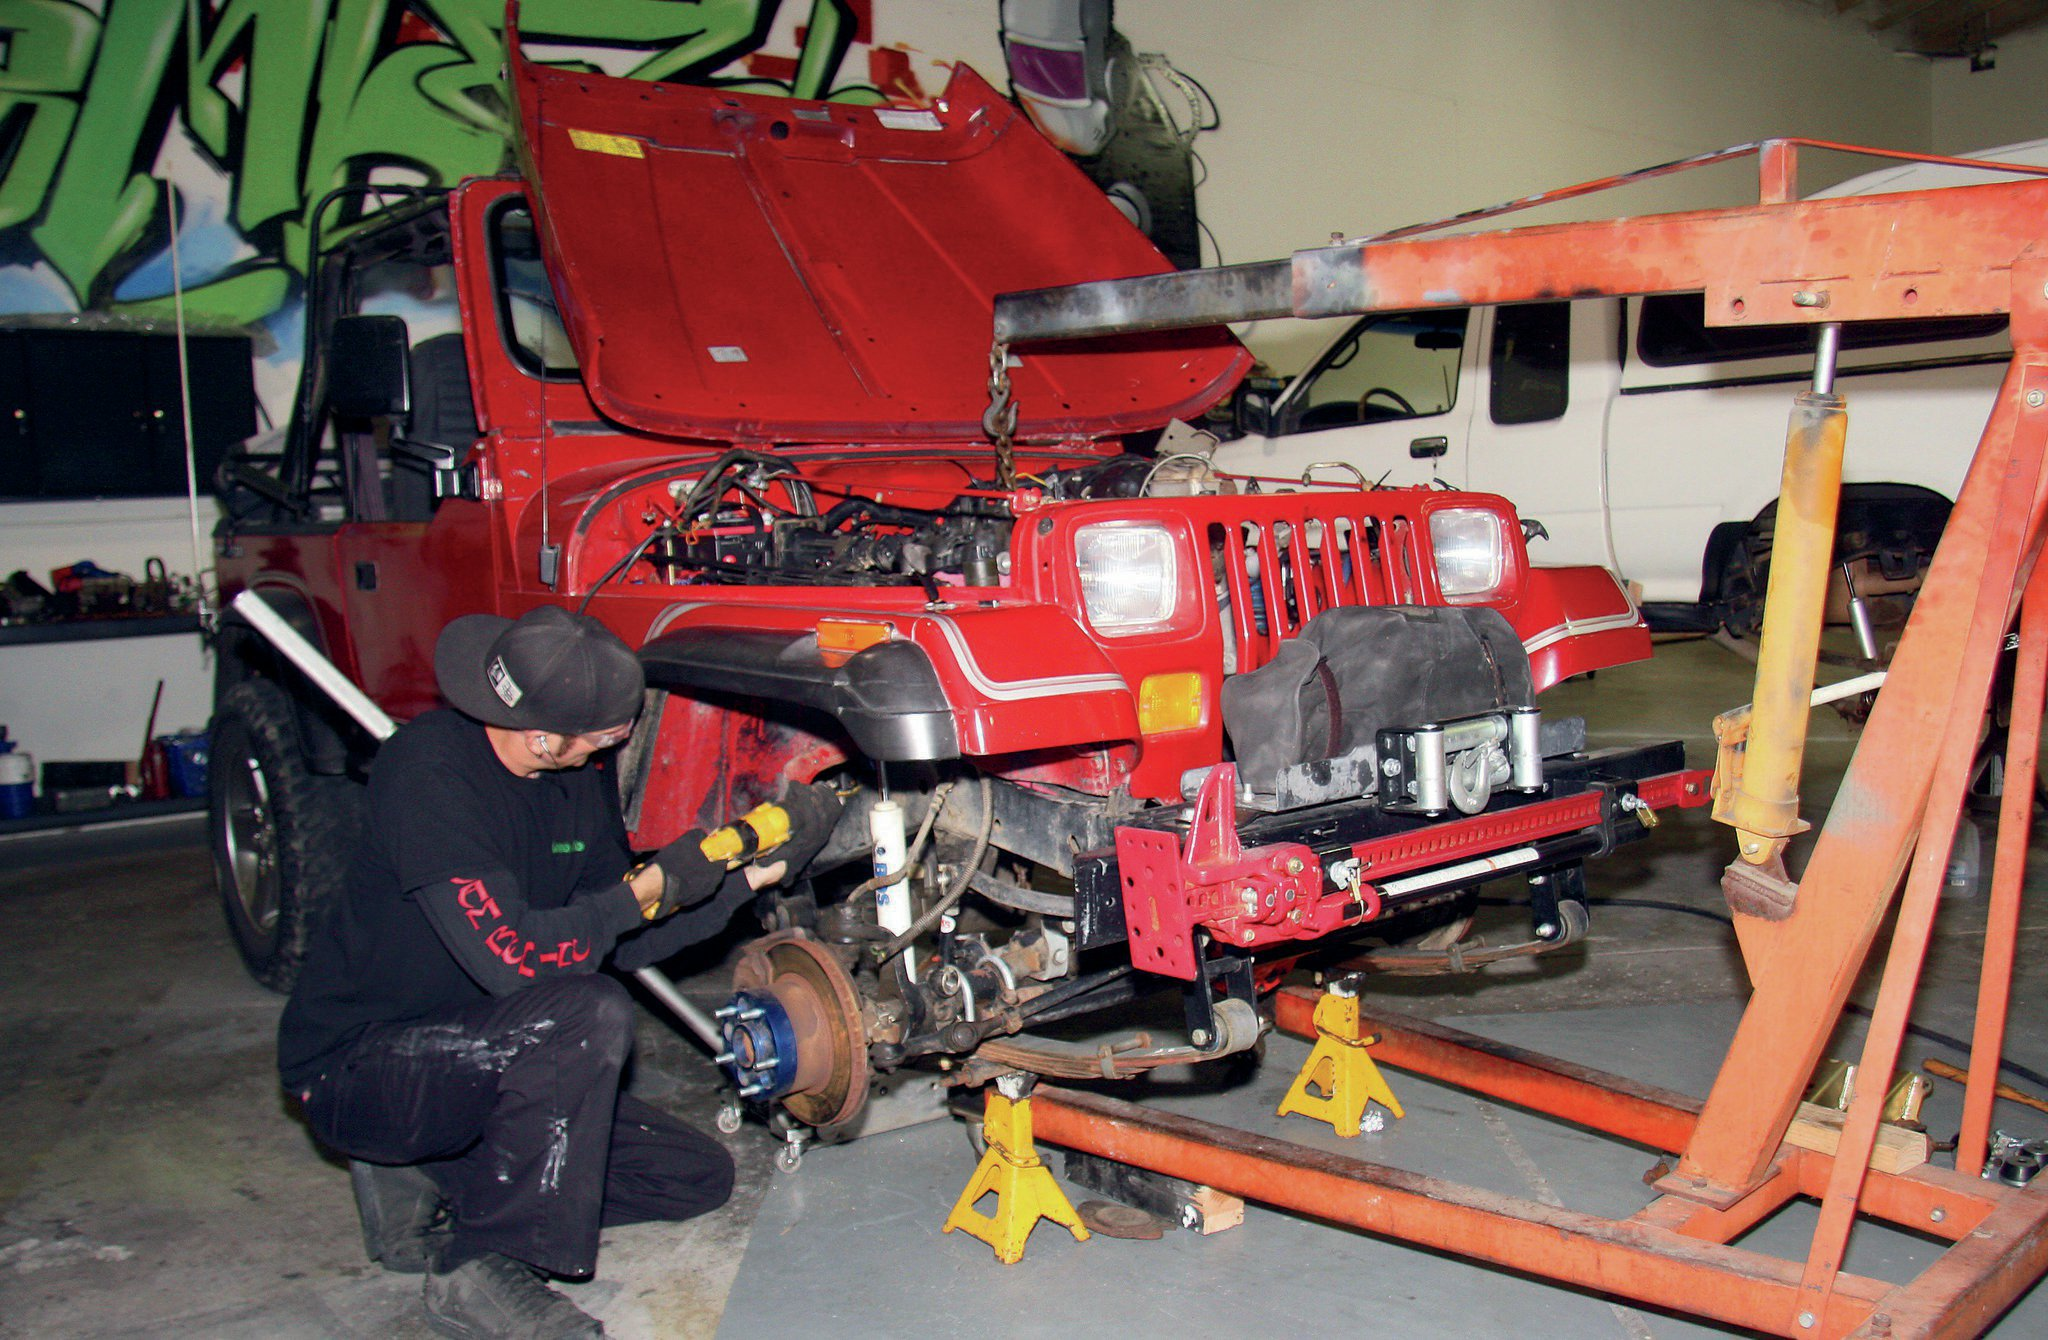 With the V-8 mocked into place, mounting position could be determined and preparation made to install new engine mounts. Time spent here is valuable to the final results. Engine placement can affect hood, radiator, and firewall clearance. Position may also affect drivetrain angle and ultimately driveshaft angles and clearances.